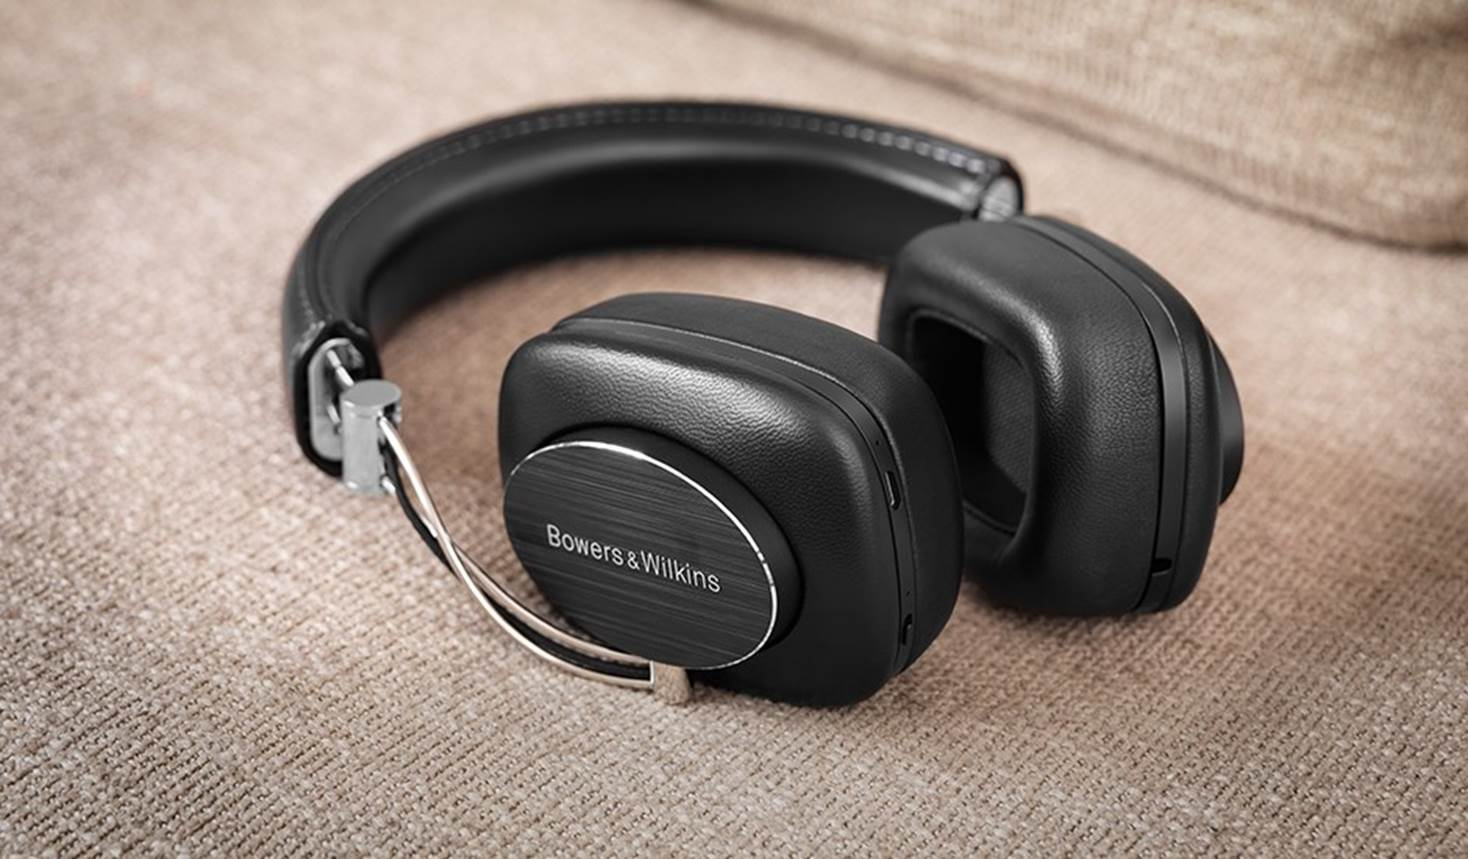 Bowers & Wilkins P7 Audiophile Headphones